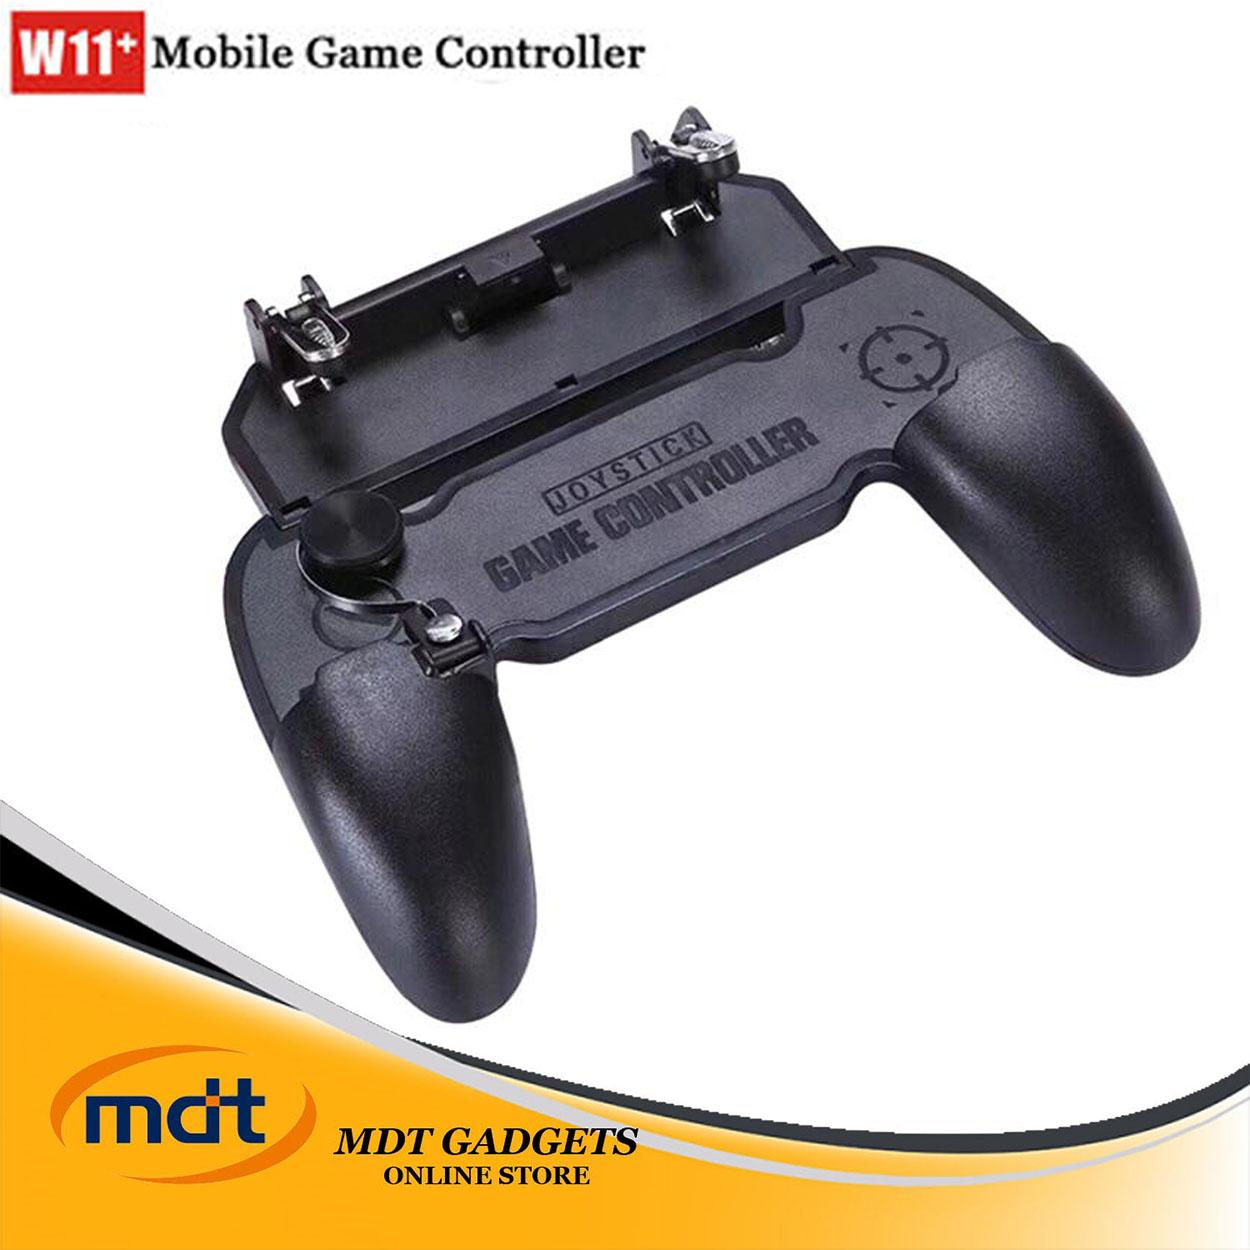 W11+ Mobile Game Controller Gaming Triggers Shooting Game Phone Grip Holder Gaming Grip Fire And Aim For 4.5-6.5inch Phones Compatible With Pubg Mobile/fortnite/rules Of Survival By Mdt Gadgets.